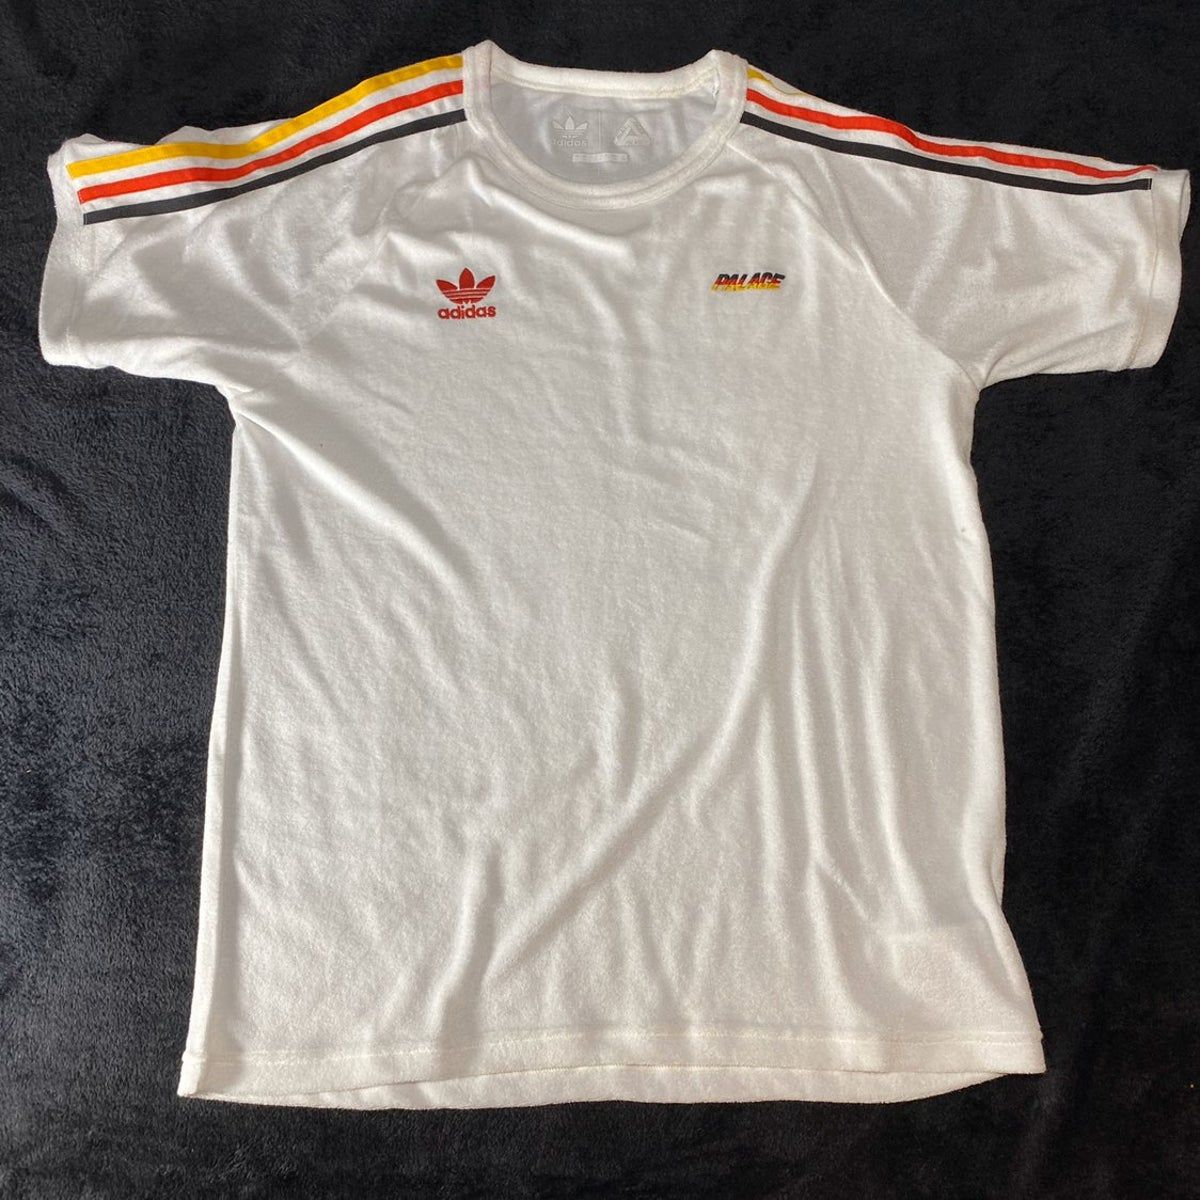 Palace Adidas Terry T Shirt White Red Striped Shirt Shirts White White Adidas [ 1200 x 1200 Pixel ]